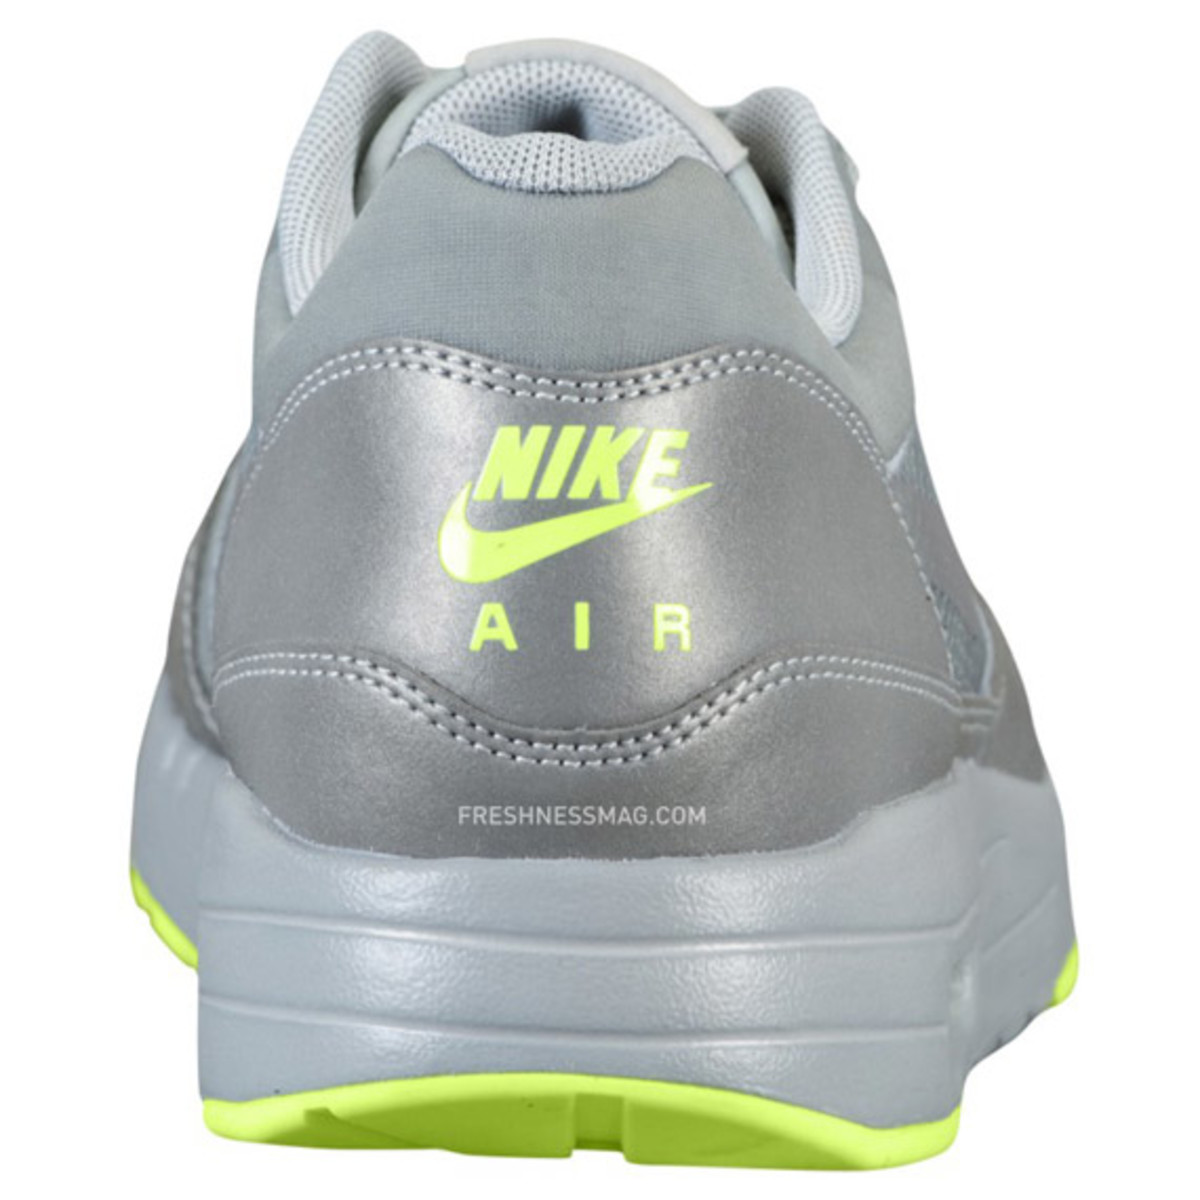 nike-air-maxim-1-air-attack-volt-05